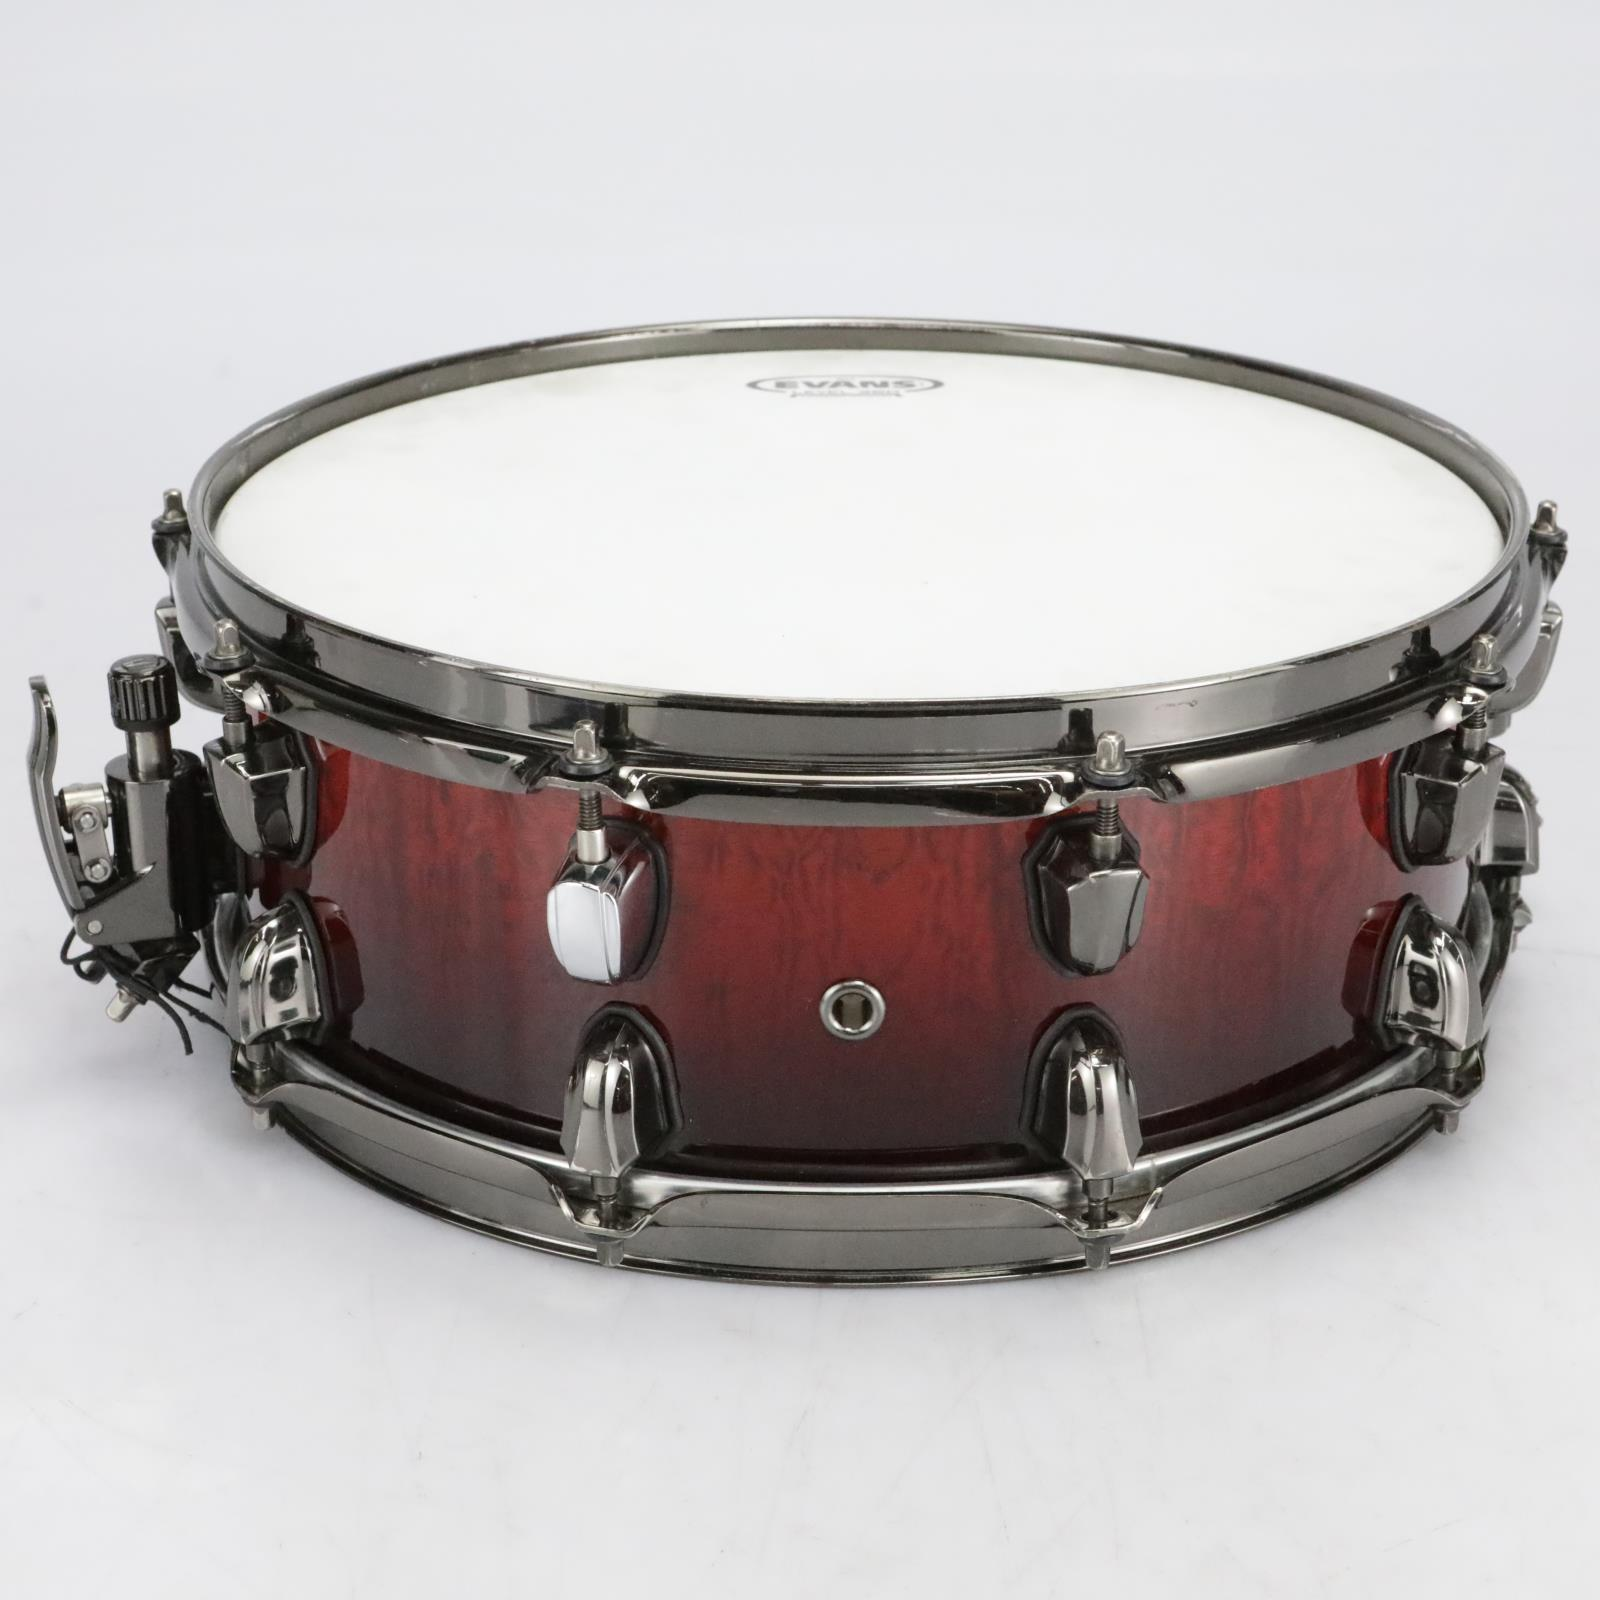 "Mapex Saturn MH Exotic Series 14"" x 5.5"" Snare Drum Maple Cherry Mist #41070"